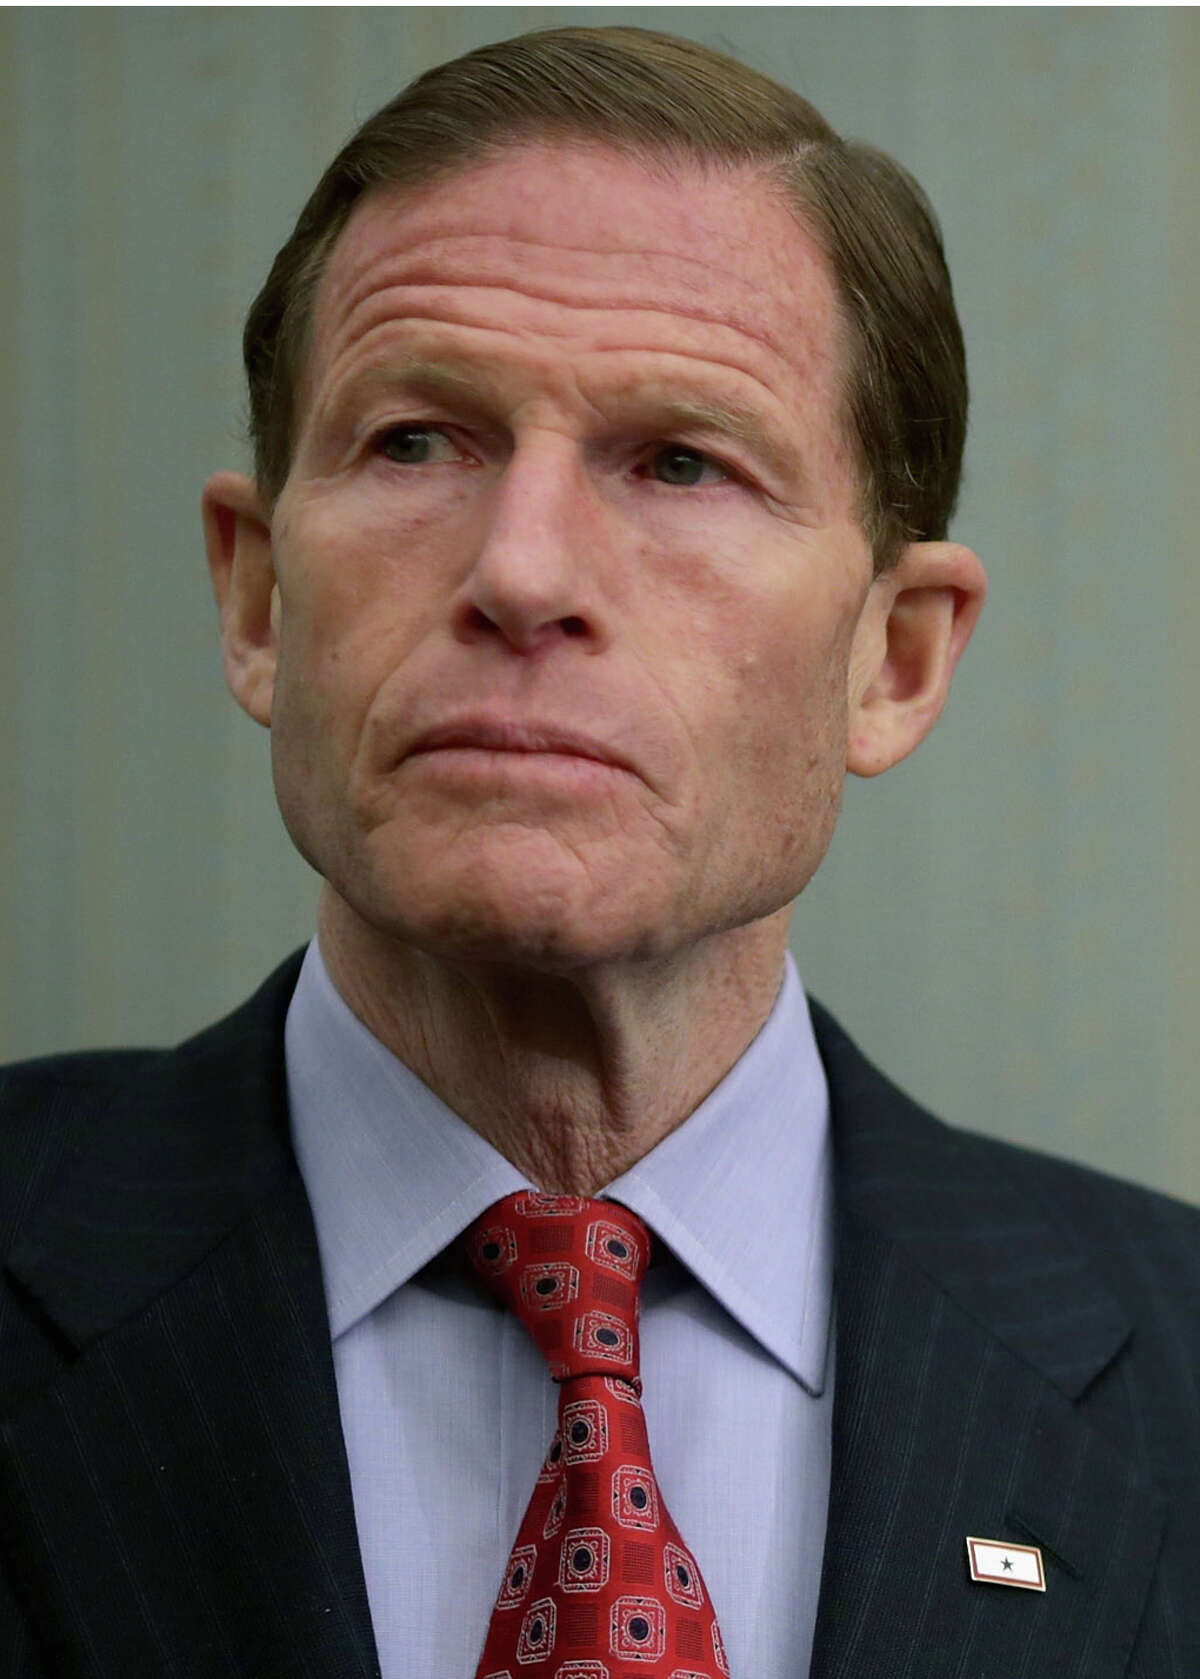 Sen. Richard Blumenthal (D-CT) participates in a news conference to highlight the benefits of raising the national minimum wage at the U.S. Capitol March 27, 2014 in Washington, DC.